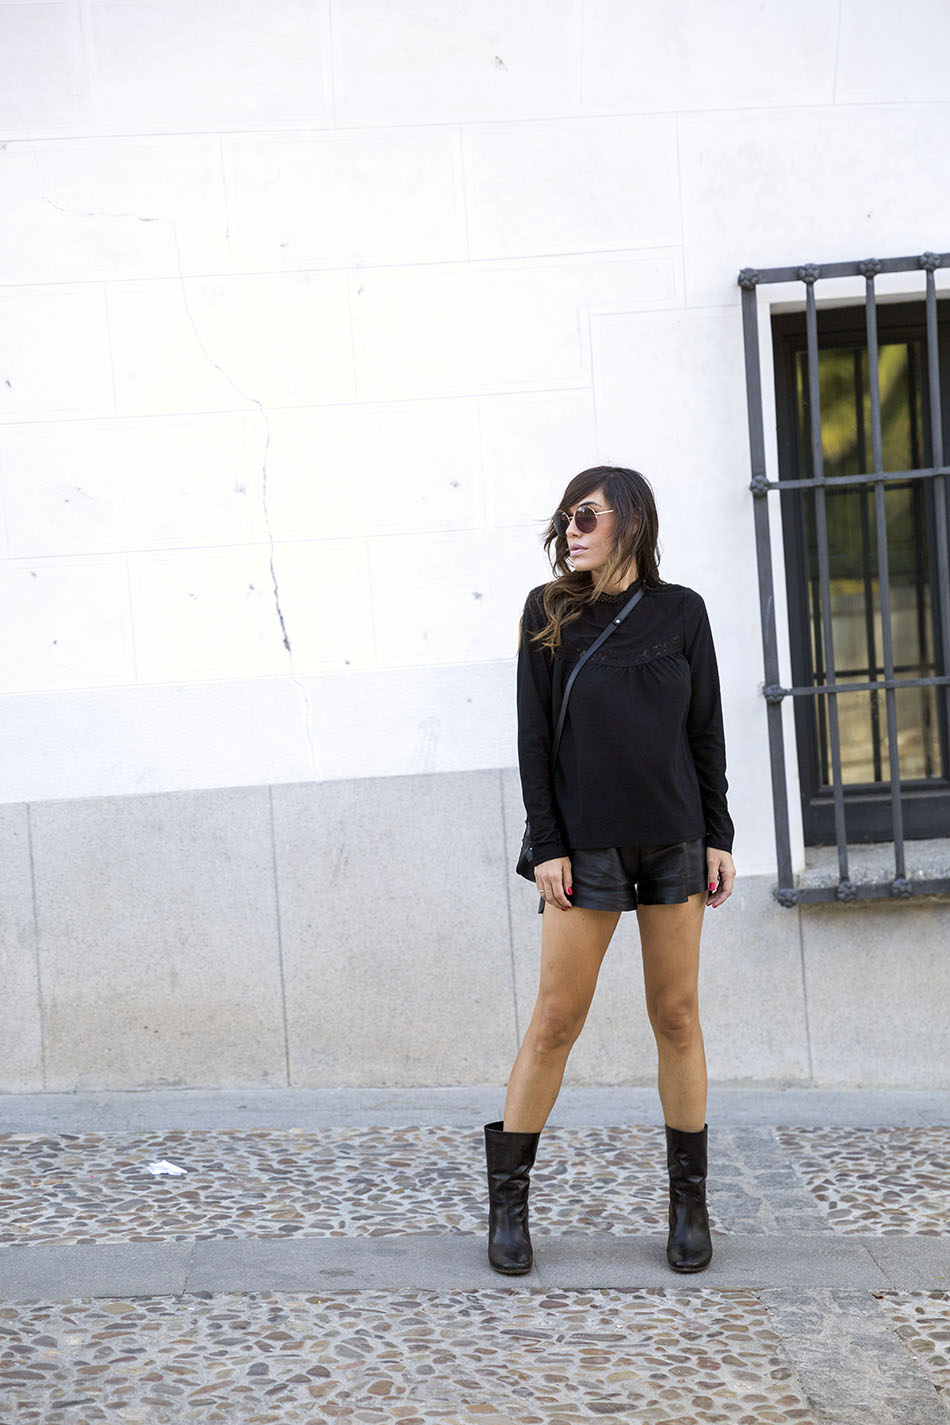 street-style-october-2016-outfits-review-barbara-crespo-07